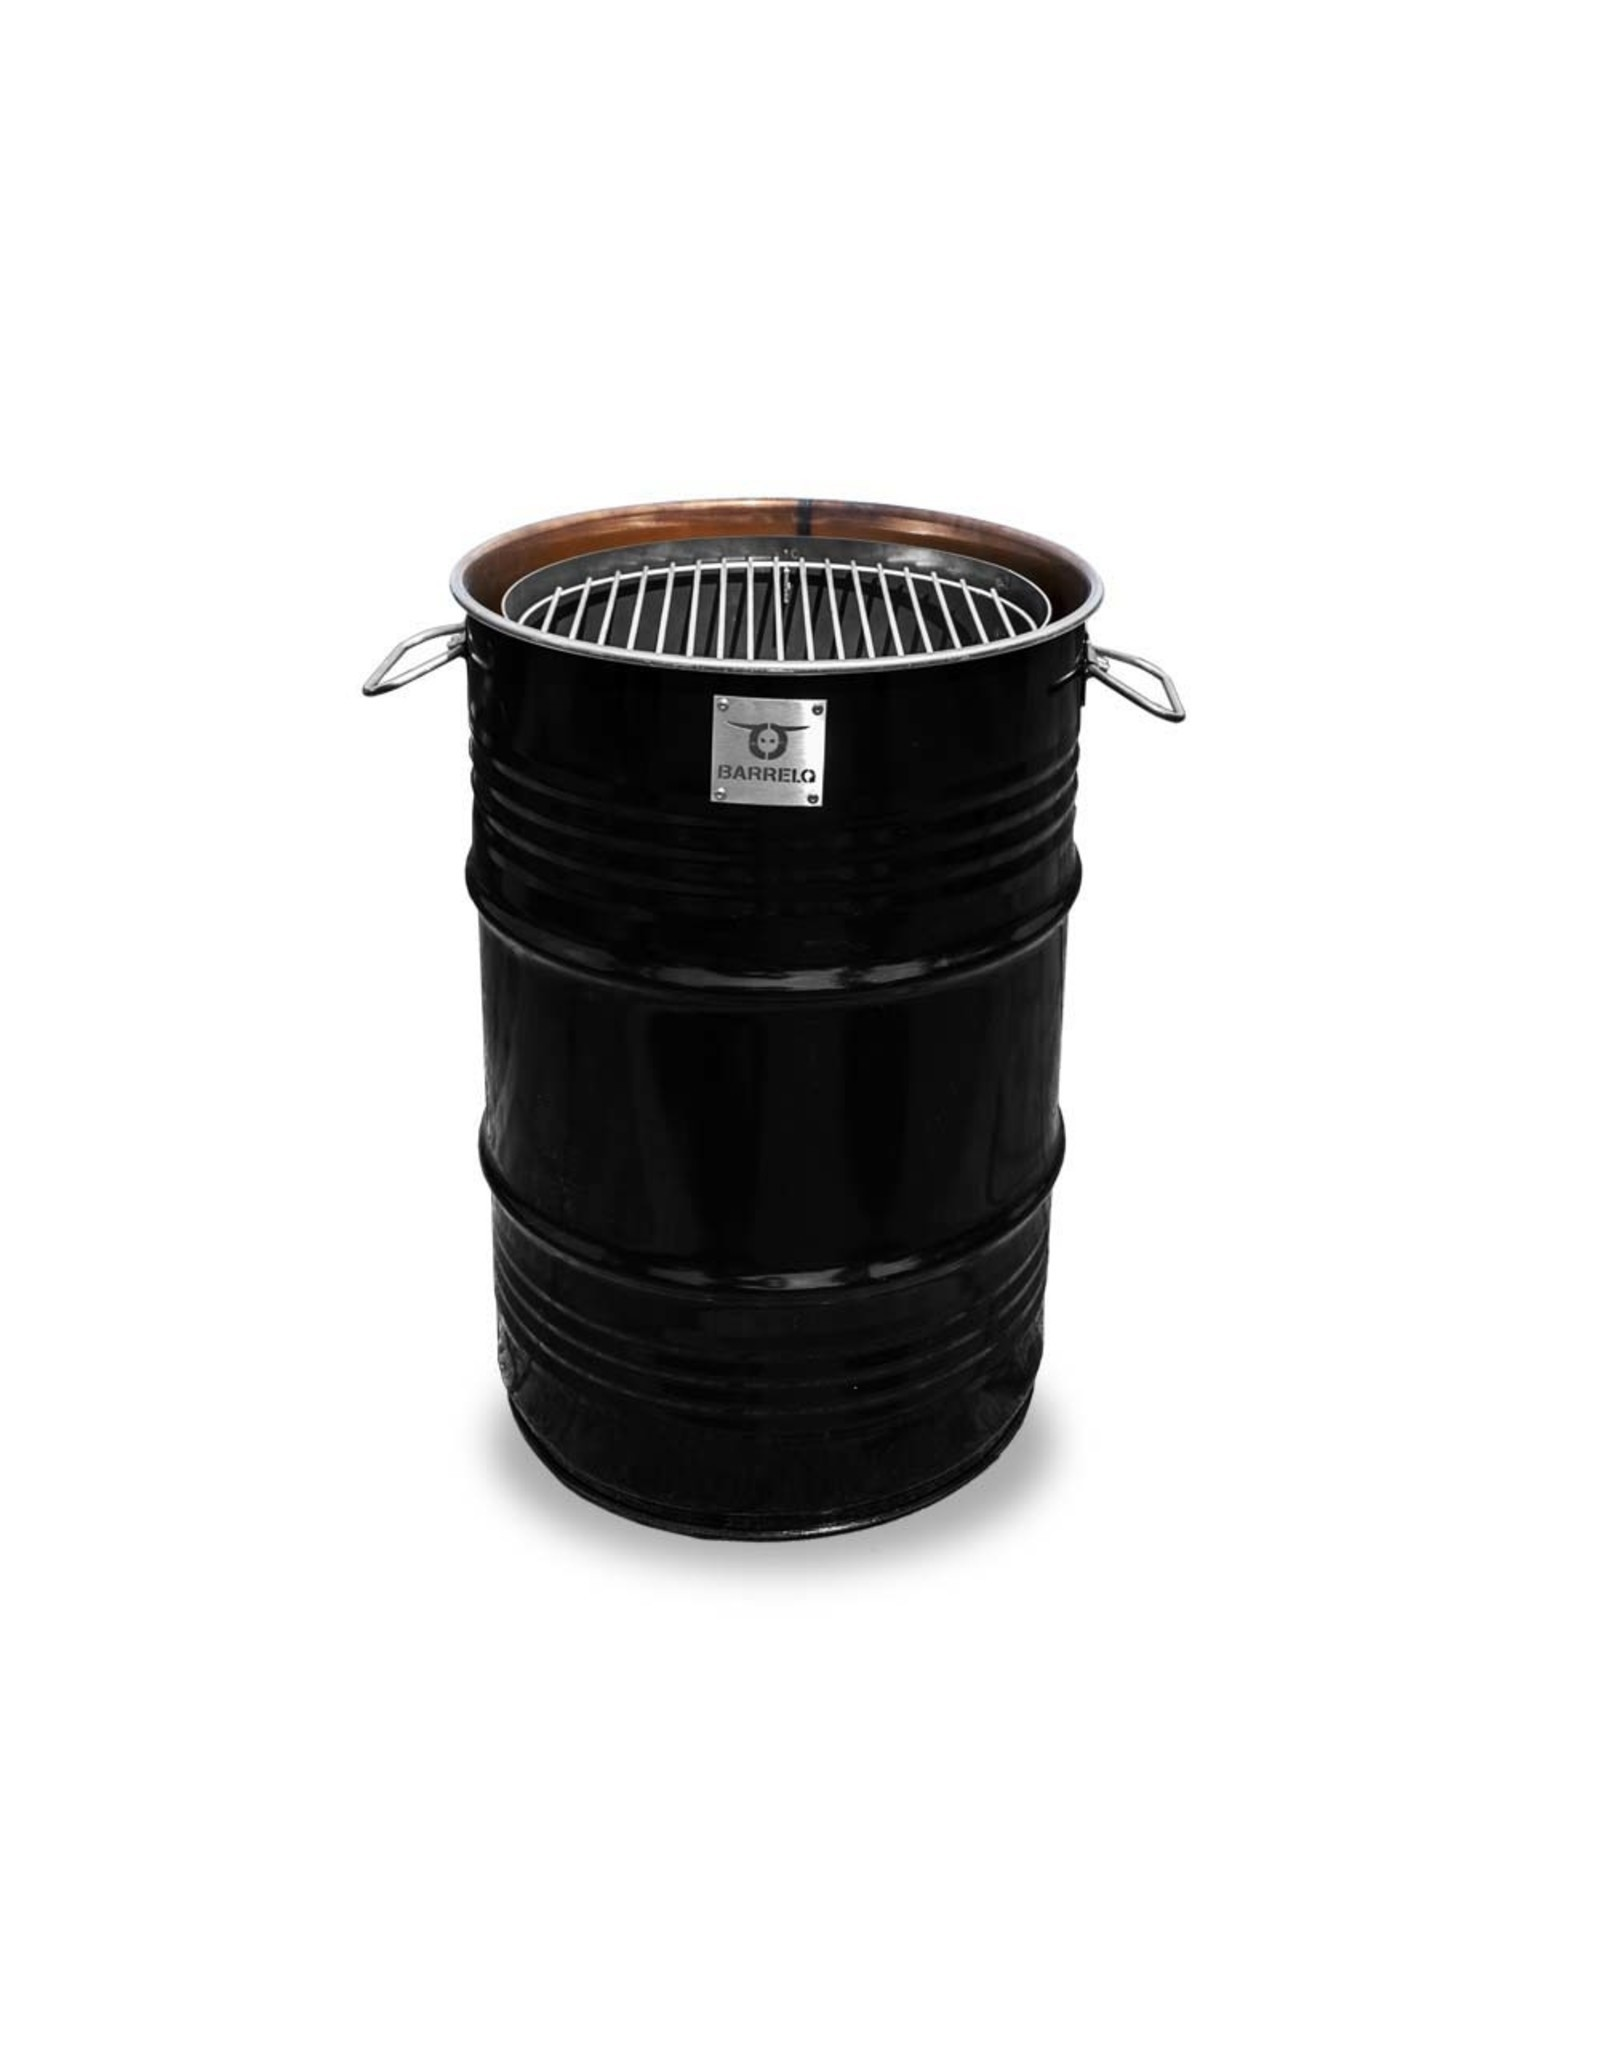 BarrelQ BarrelQSmall Notorius black 60 Liter Barbecue, firepit and table in one. included protective cover